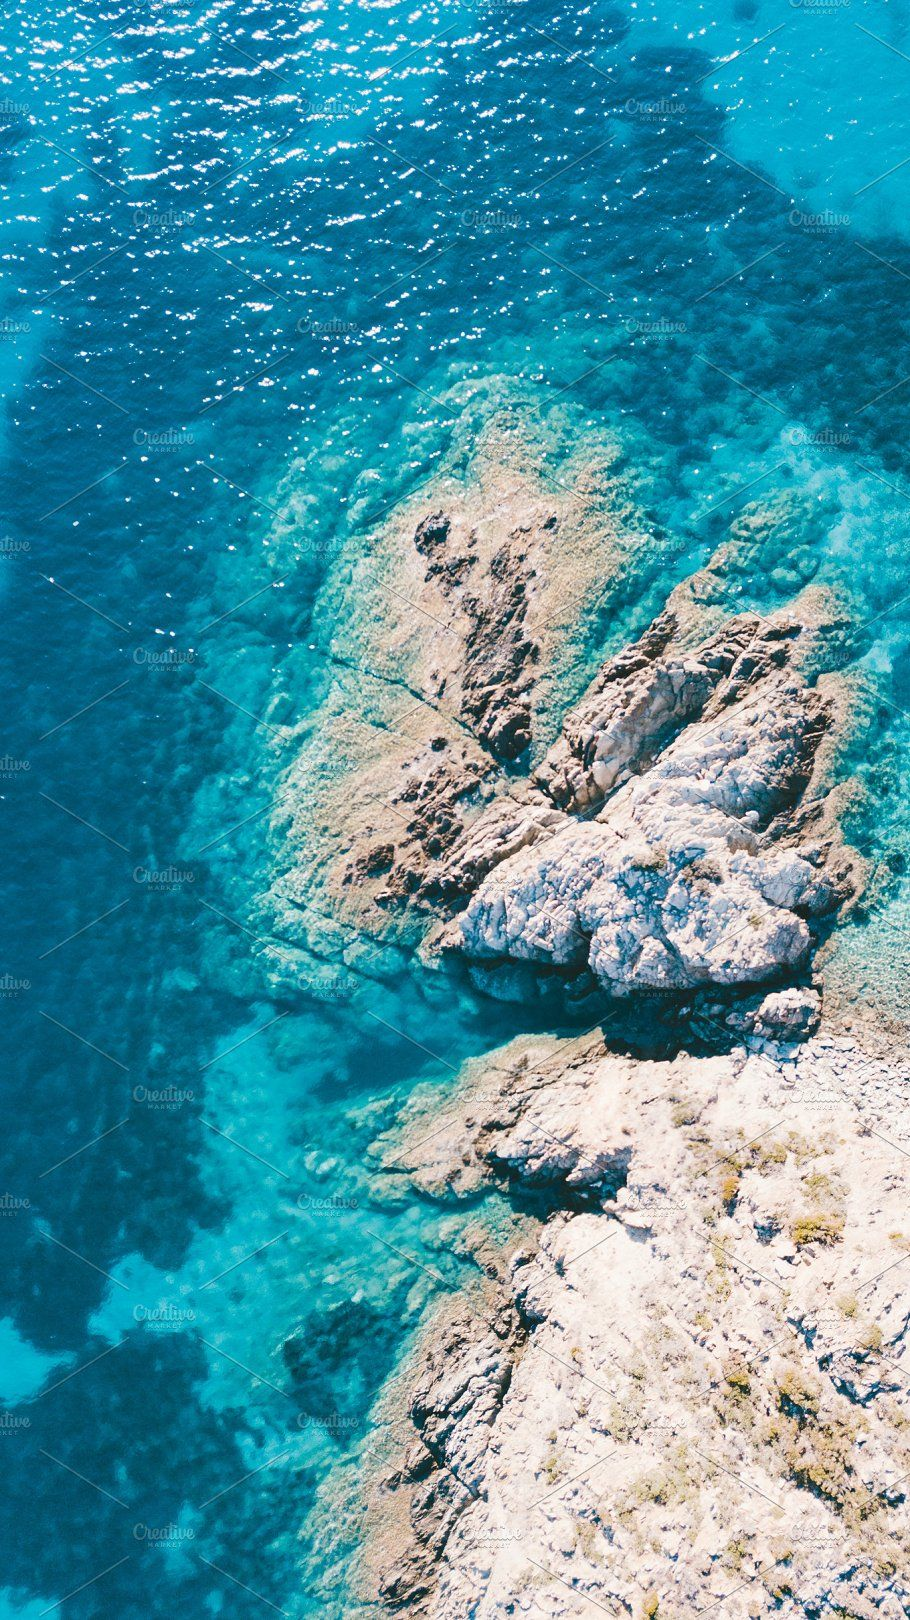 Aerial View Of The Amazing Sea Stock Photo Containing Mediterranean Sea And Scenery Wallpaper View Wallpaper Aerial View